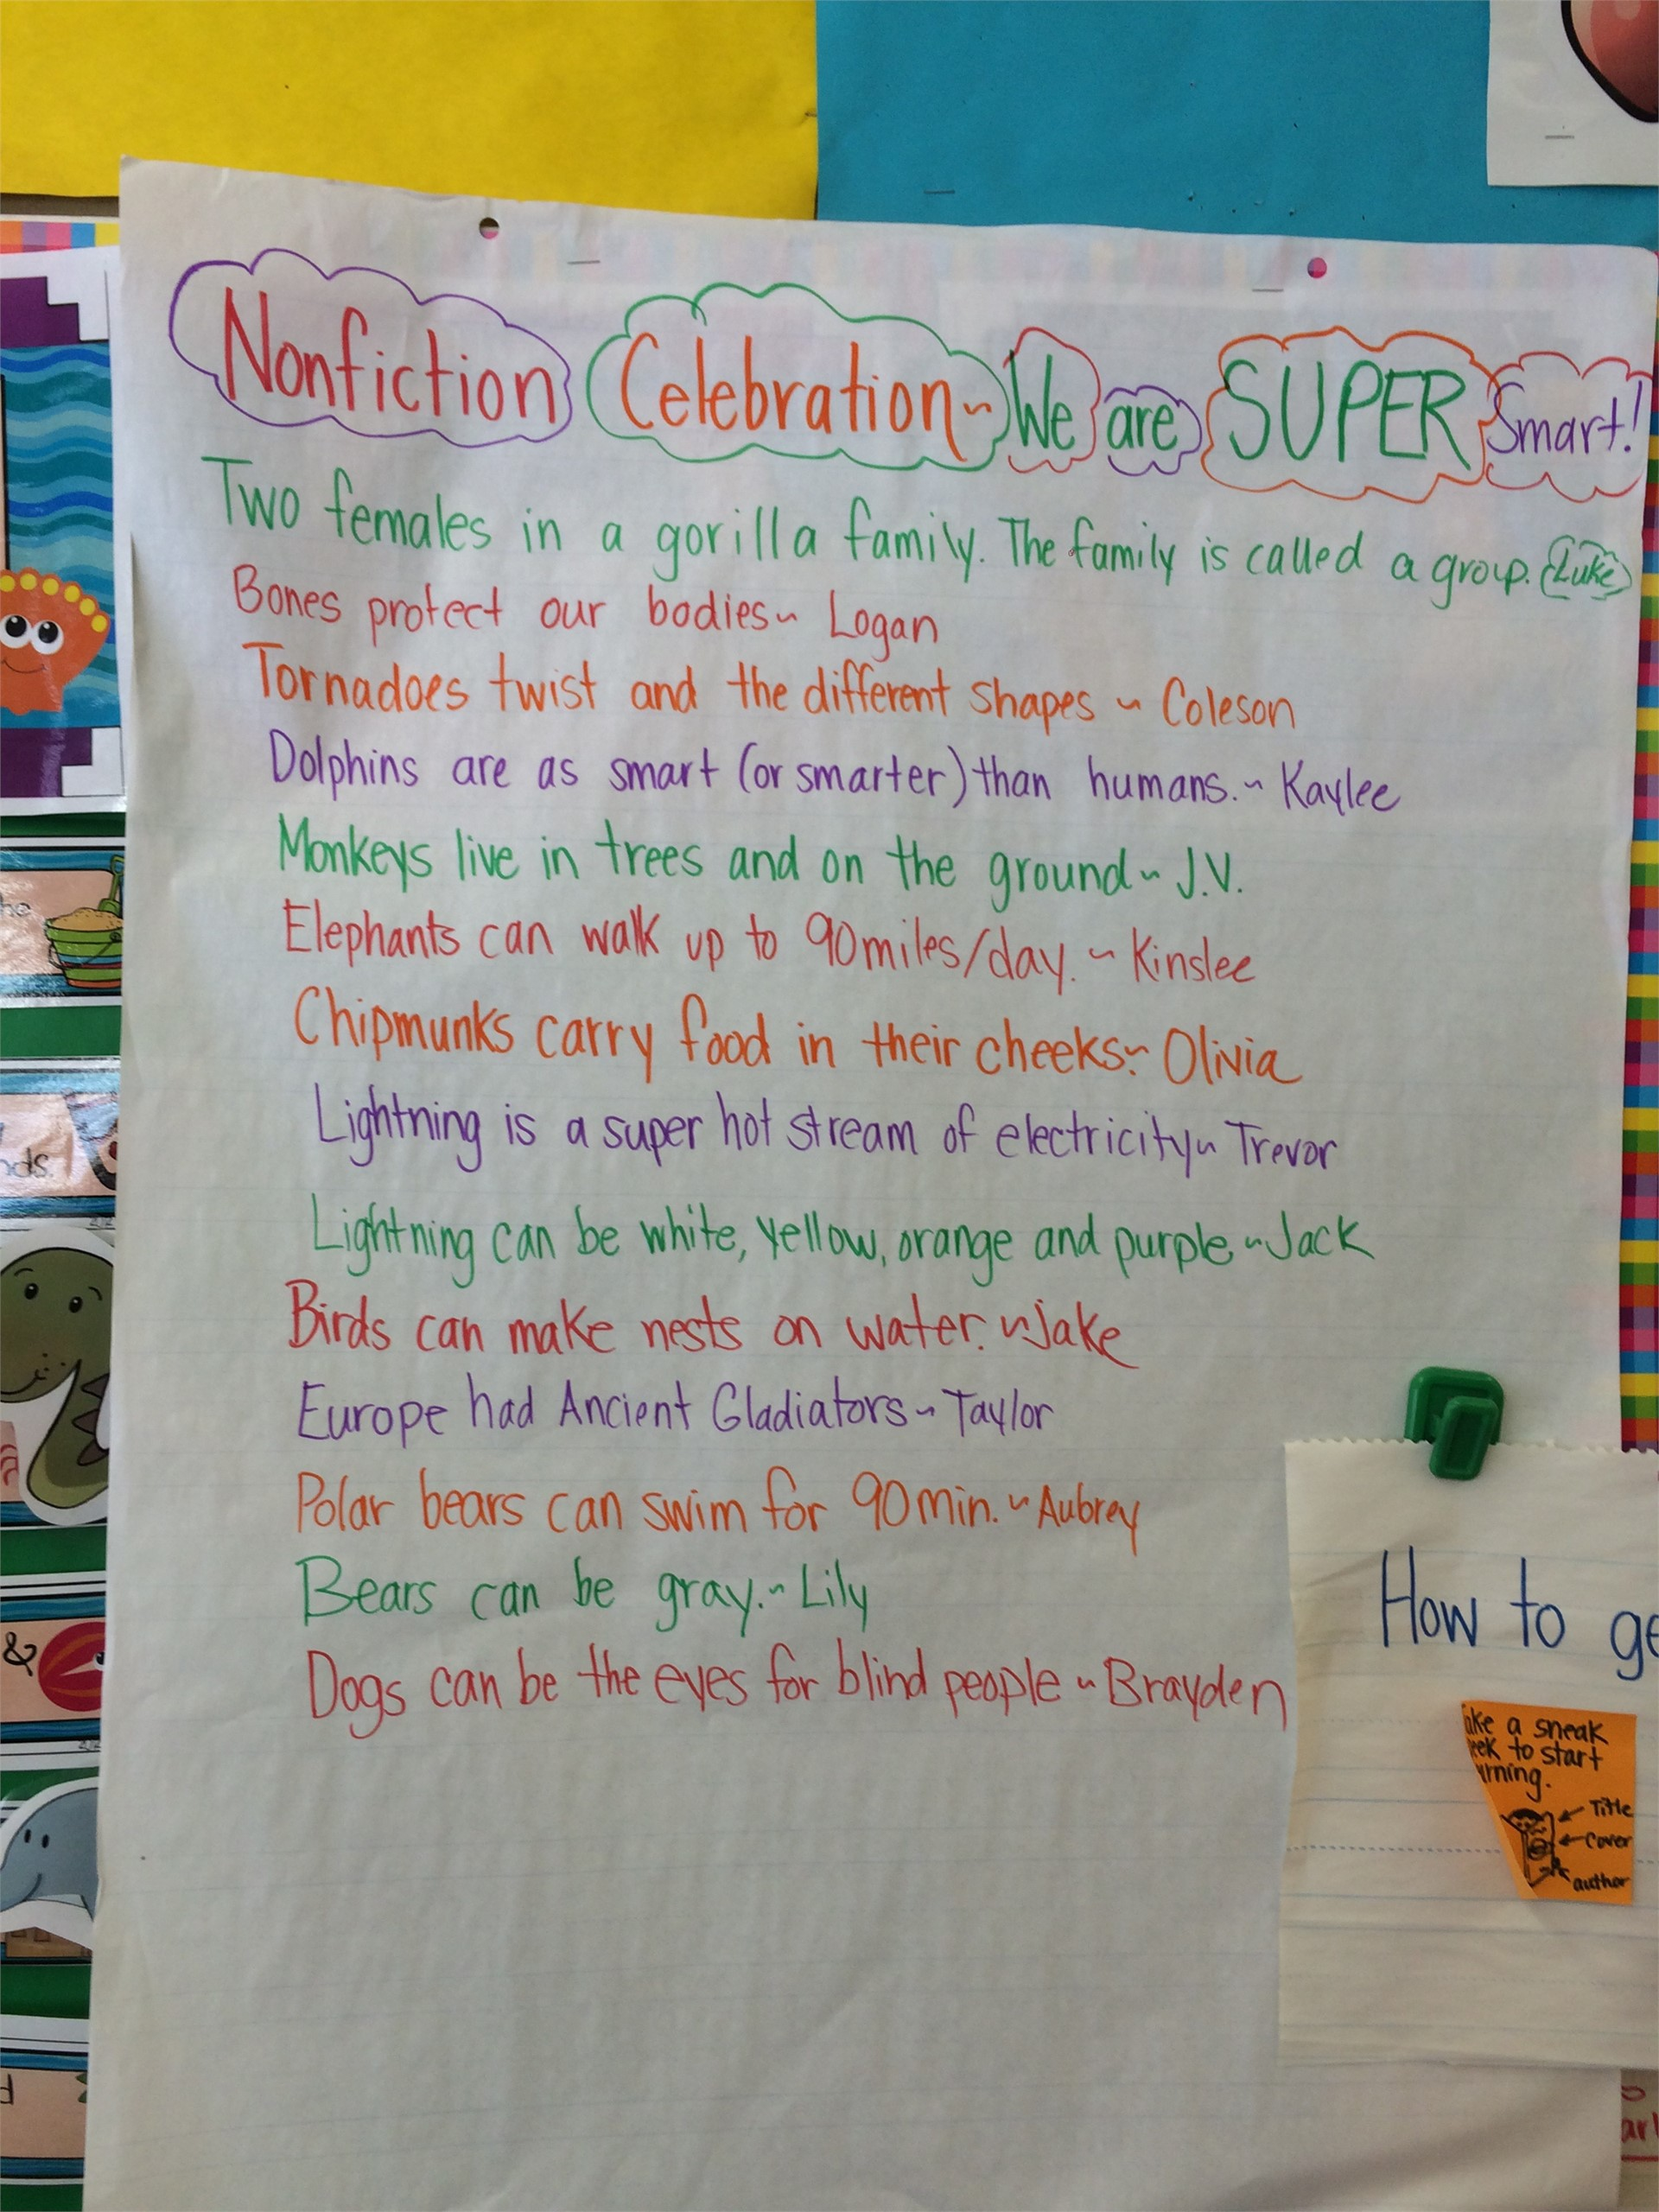 We can learn so much from nonfiction reading!